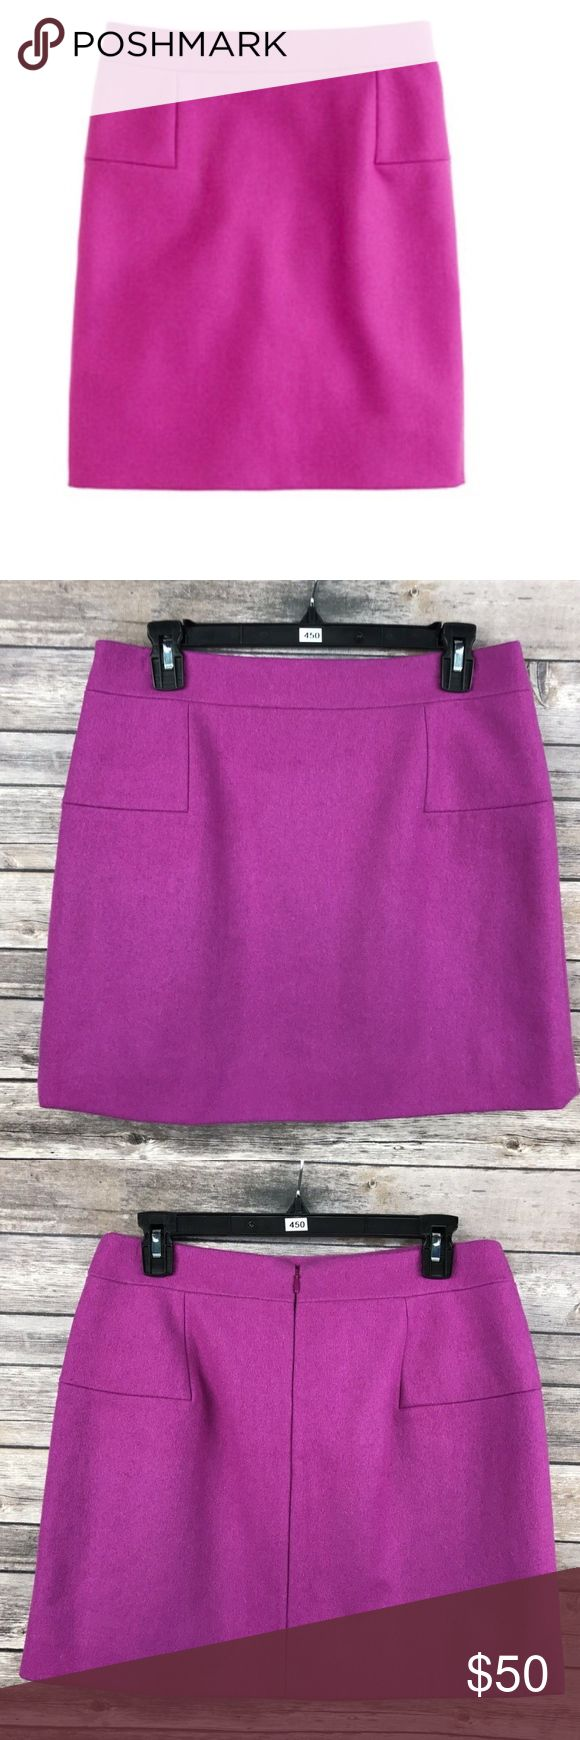 J. Crew Fuchsia Classic Felted Wool Mini Skirt 8 J. Crew Women's Bright Fuchsia Classic Felted Wool Mini Skirt Size 8 Waist is about 15 inches. Length is about 16.5 inches.  SKU-450 J. Crew Skirts Mini